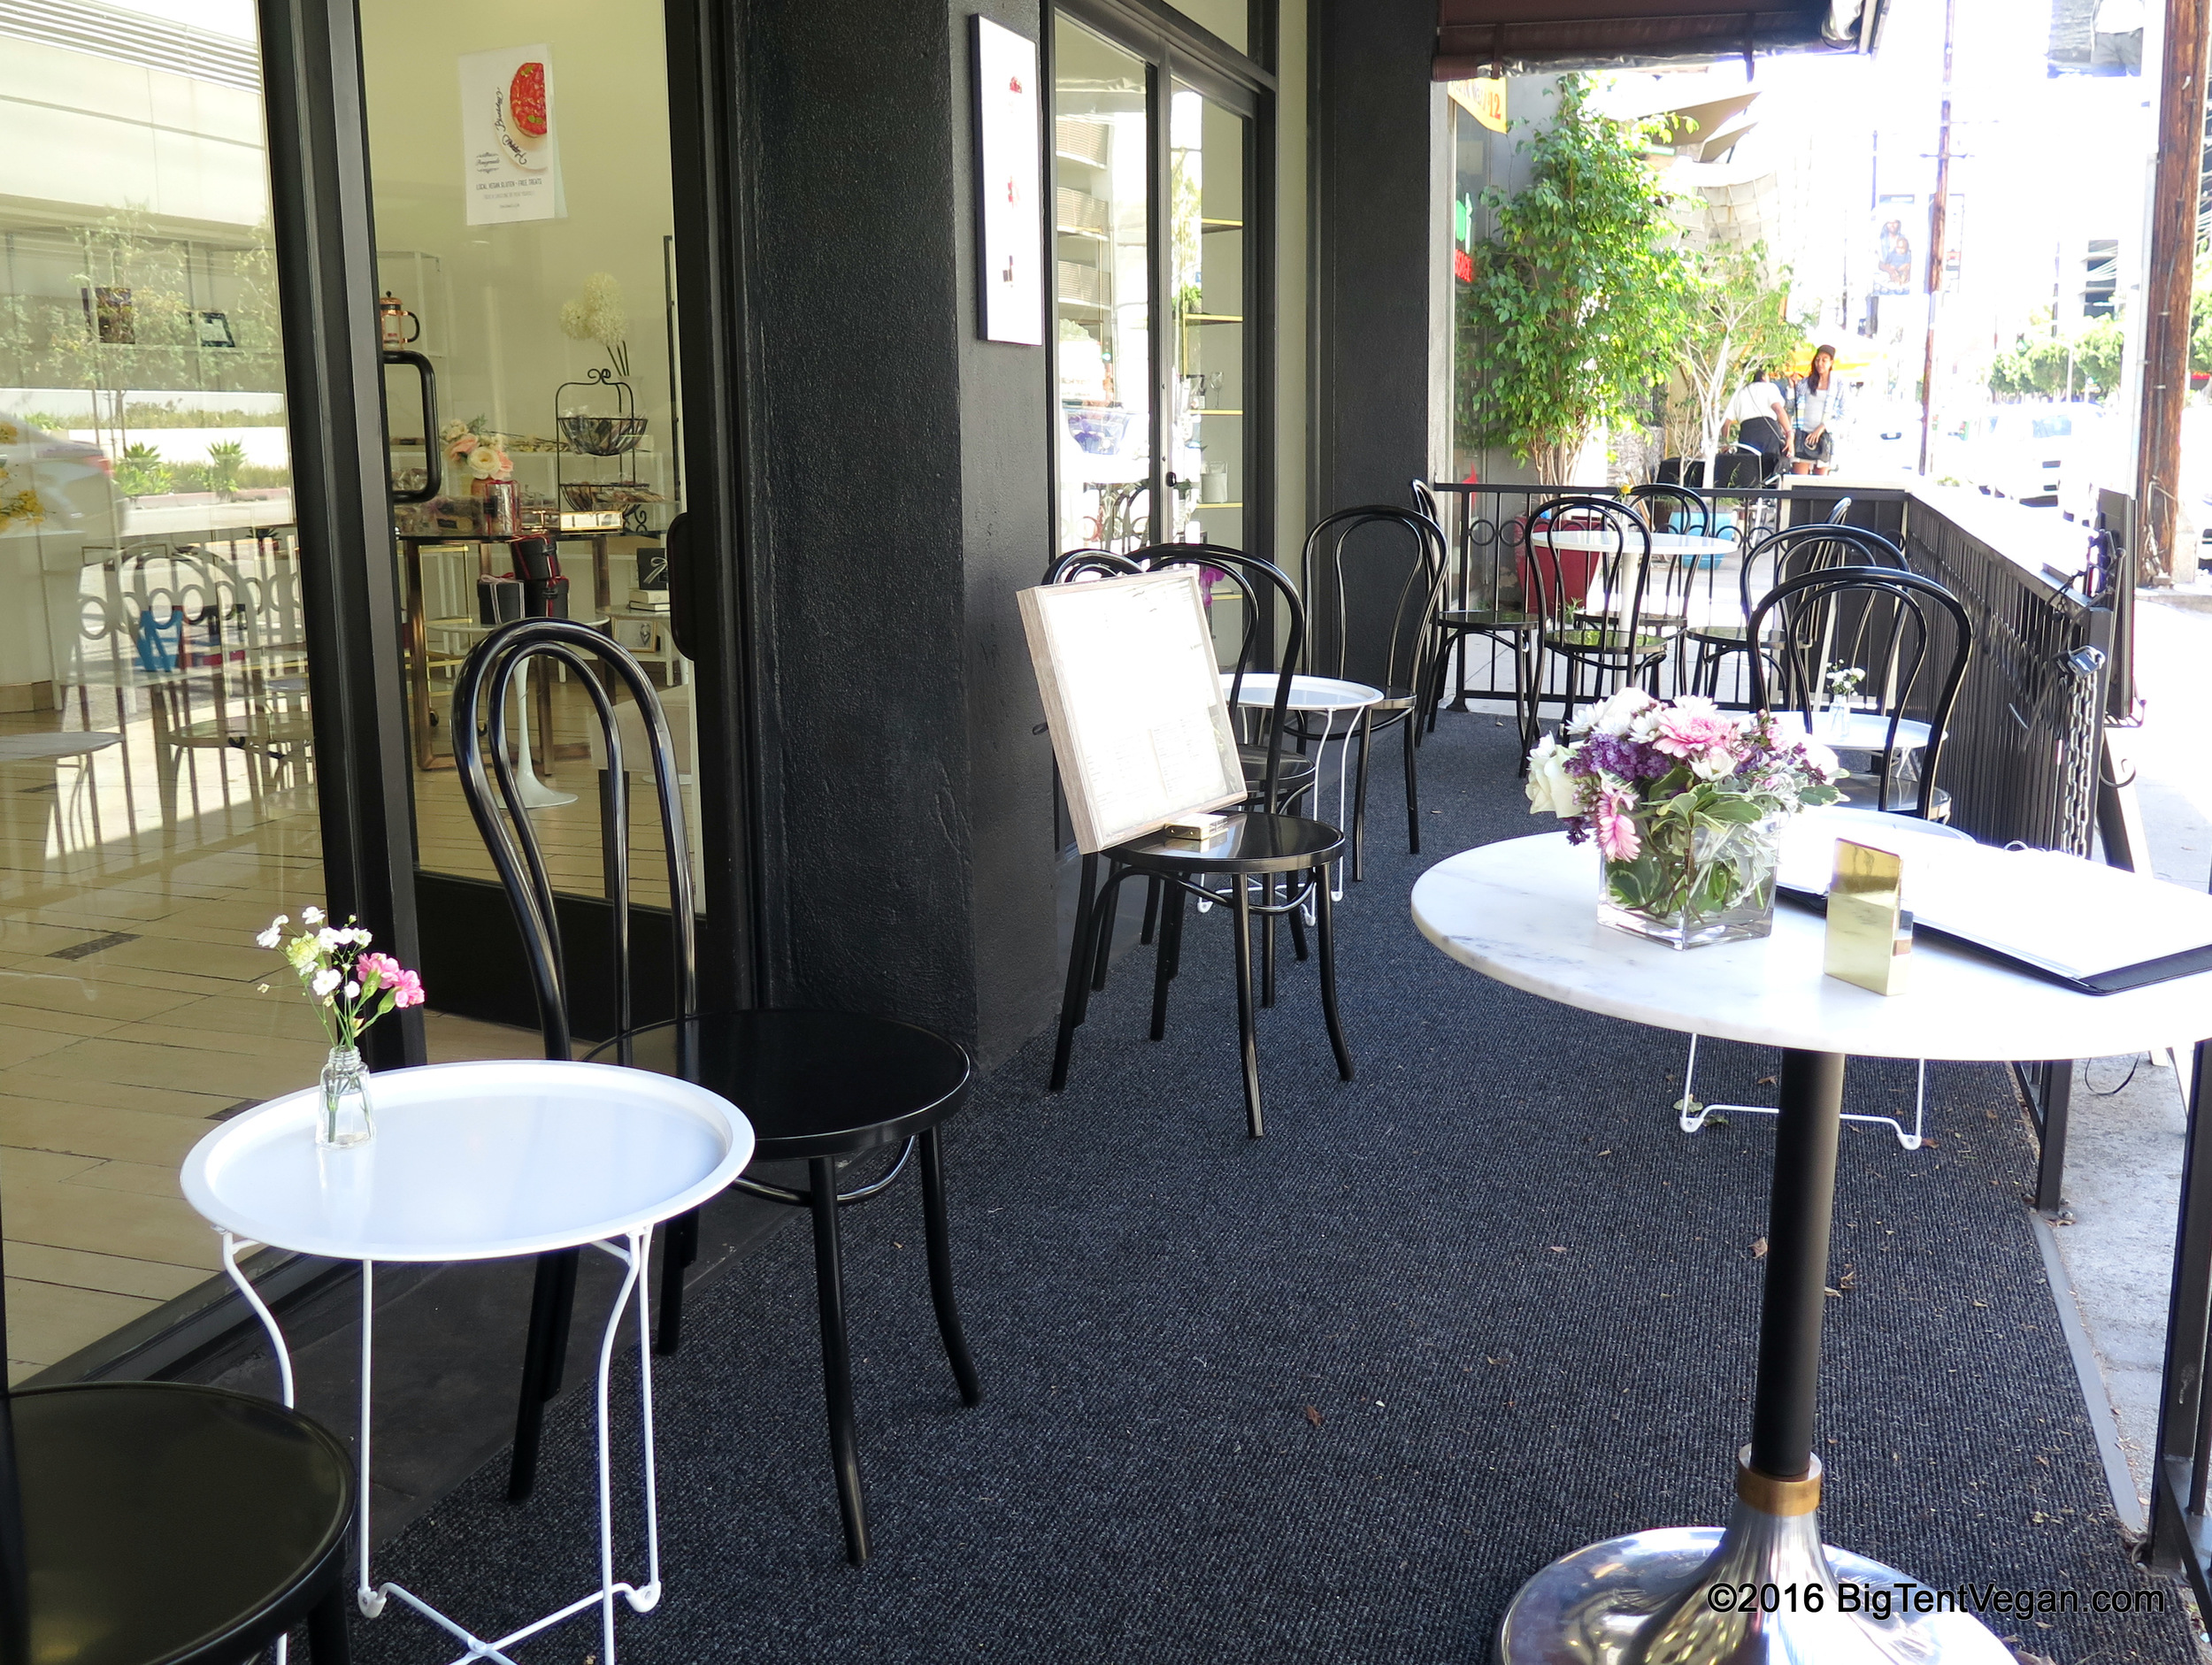 Lovely patio where you can enjoy your Pomegranate treats!